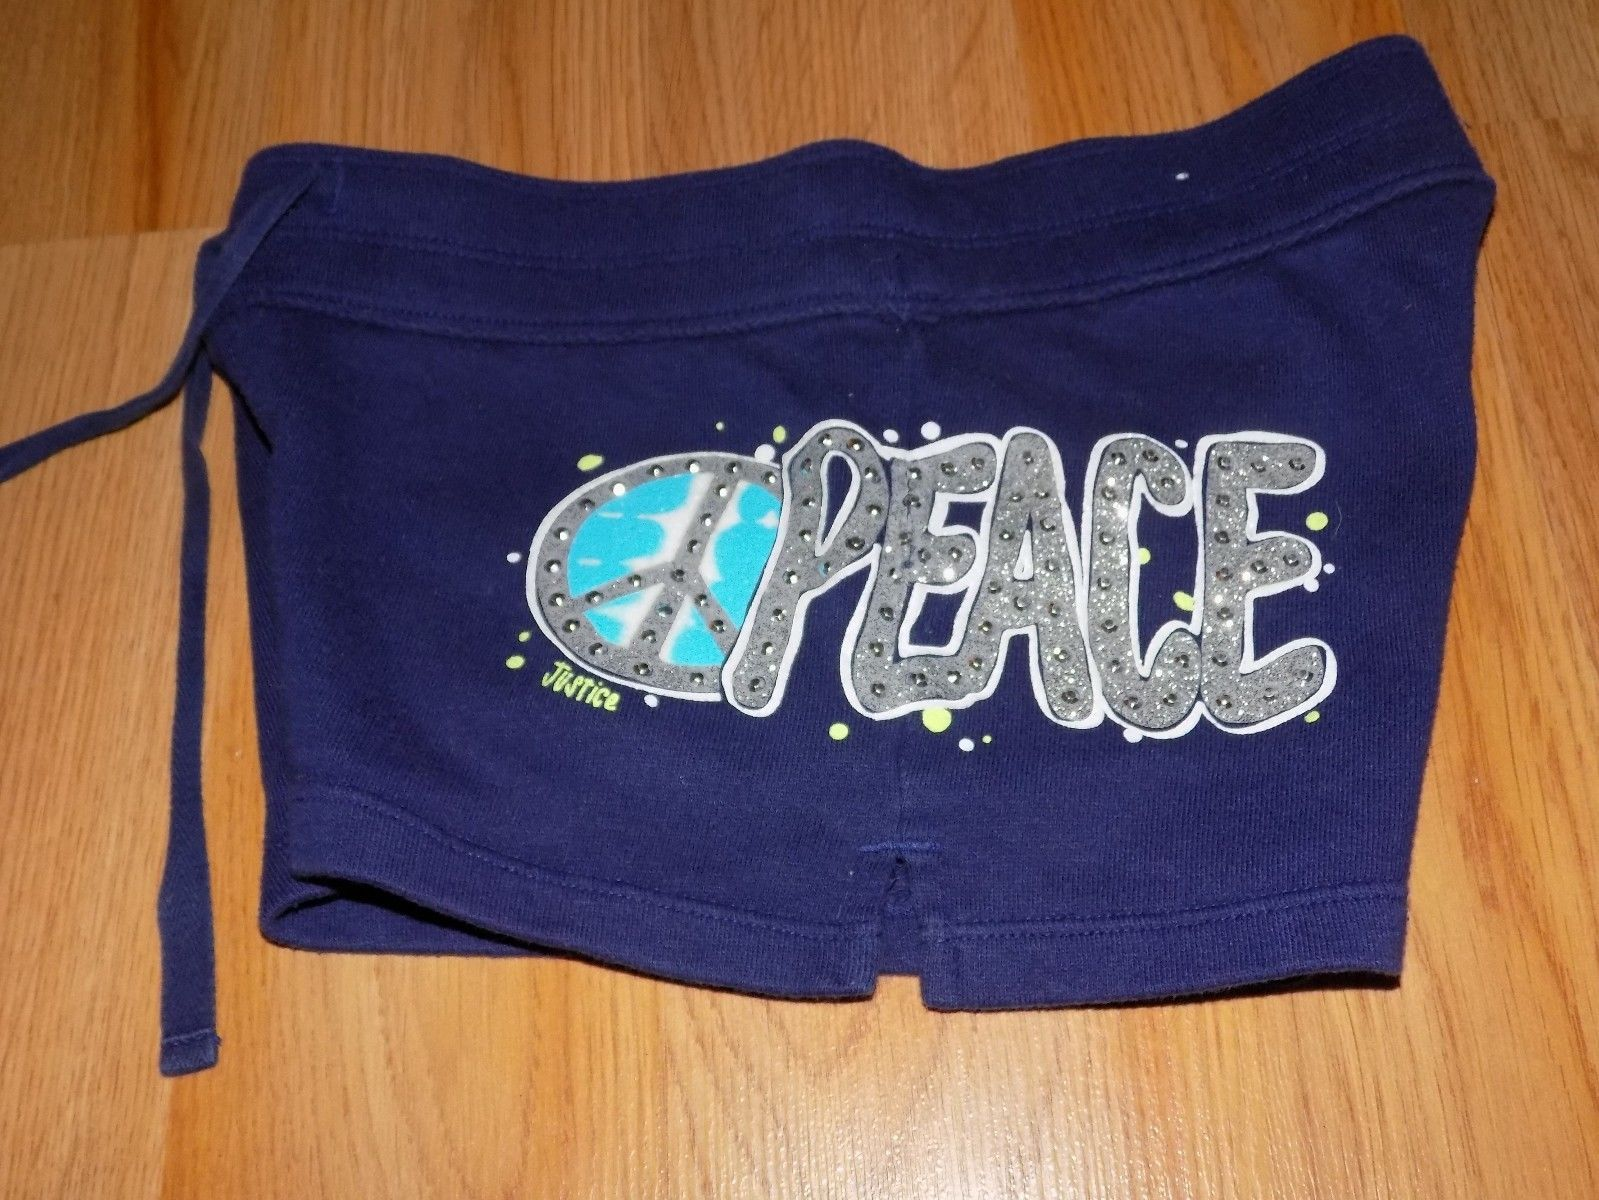 Primary image for Girl's Size 8 runs small Justice Shorts Gym Comfy Shorts PEACE Navy Blue GUC